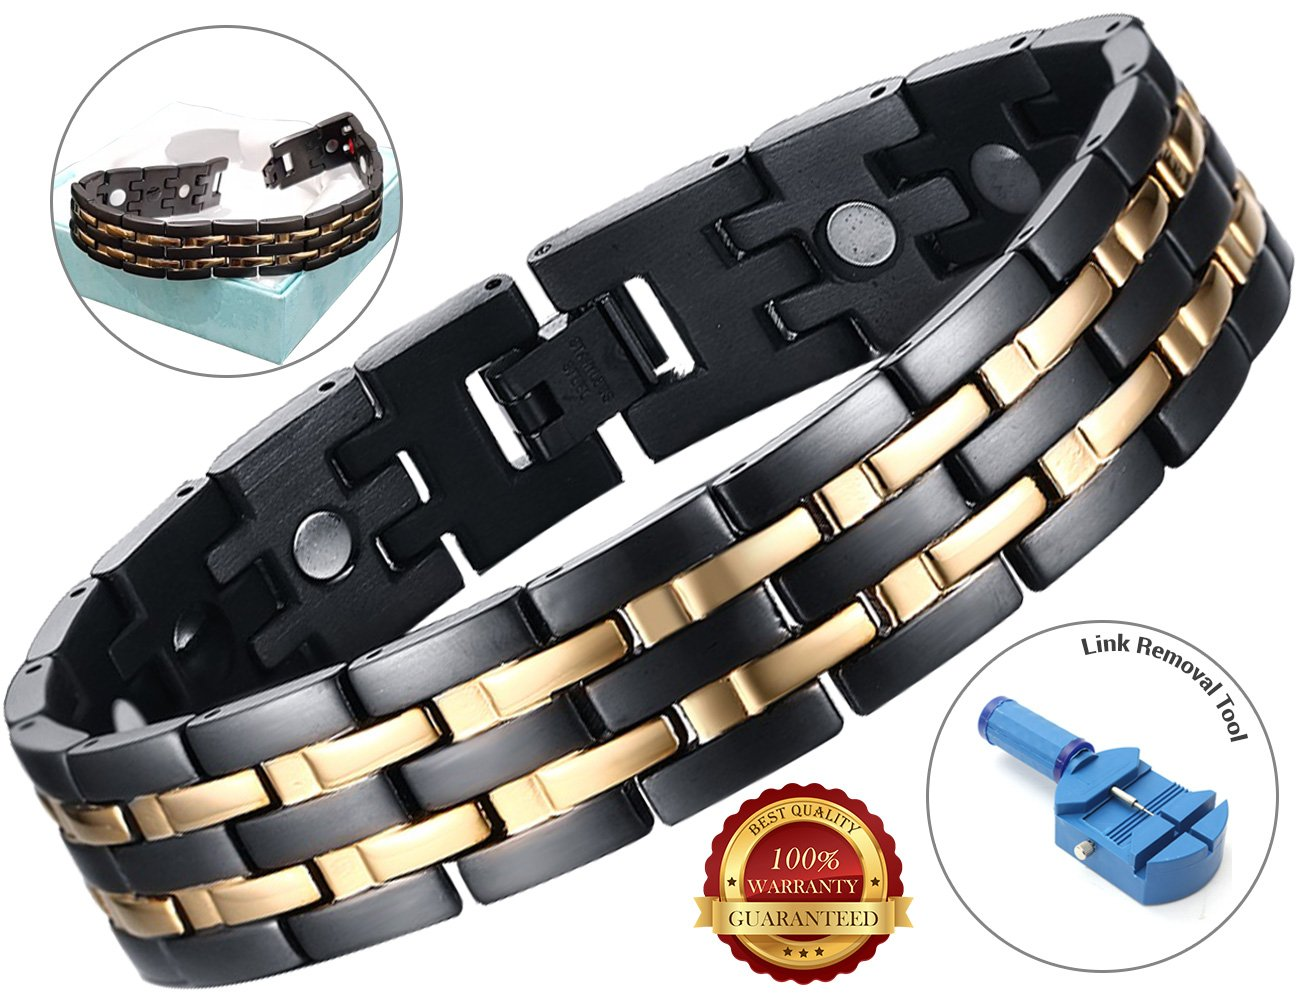 BisLinks® Titanium Magnetic Health Bracelet For Men & Women Germanium Stone Arthritis Chronic Pain Bio Therapy Carpal Tunnel Relief Negative Ion (3000 Gauss Each Magnet) + FREE LINK REMOVAL TOOL by BisLinks® (Image #1)